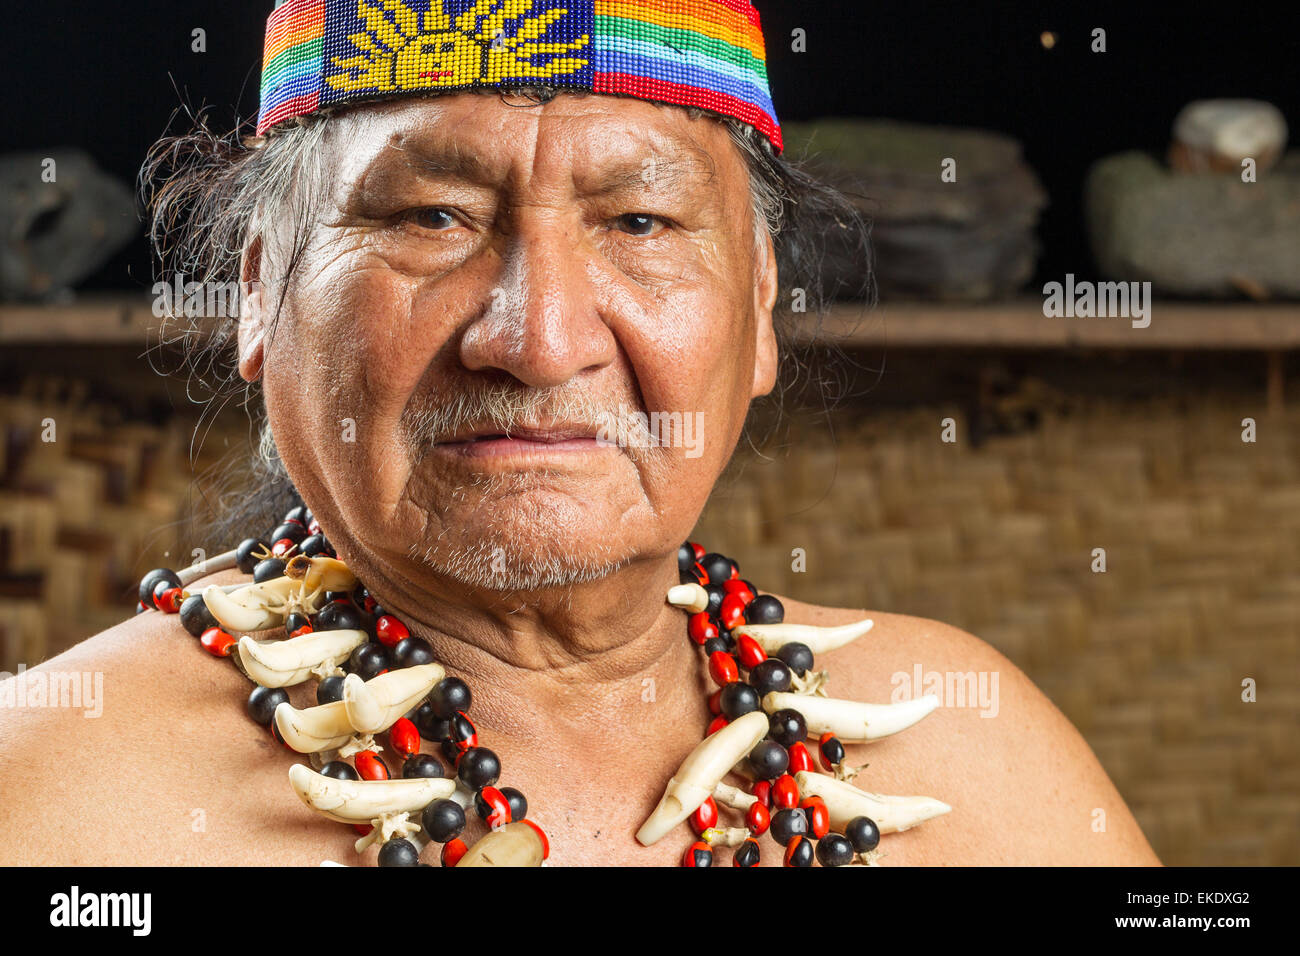 Shaman In Ecuadorian Amazonia During A Real Ayahuasca Ceremony Model Released Images As Seen In April 2015 - Stock Image